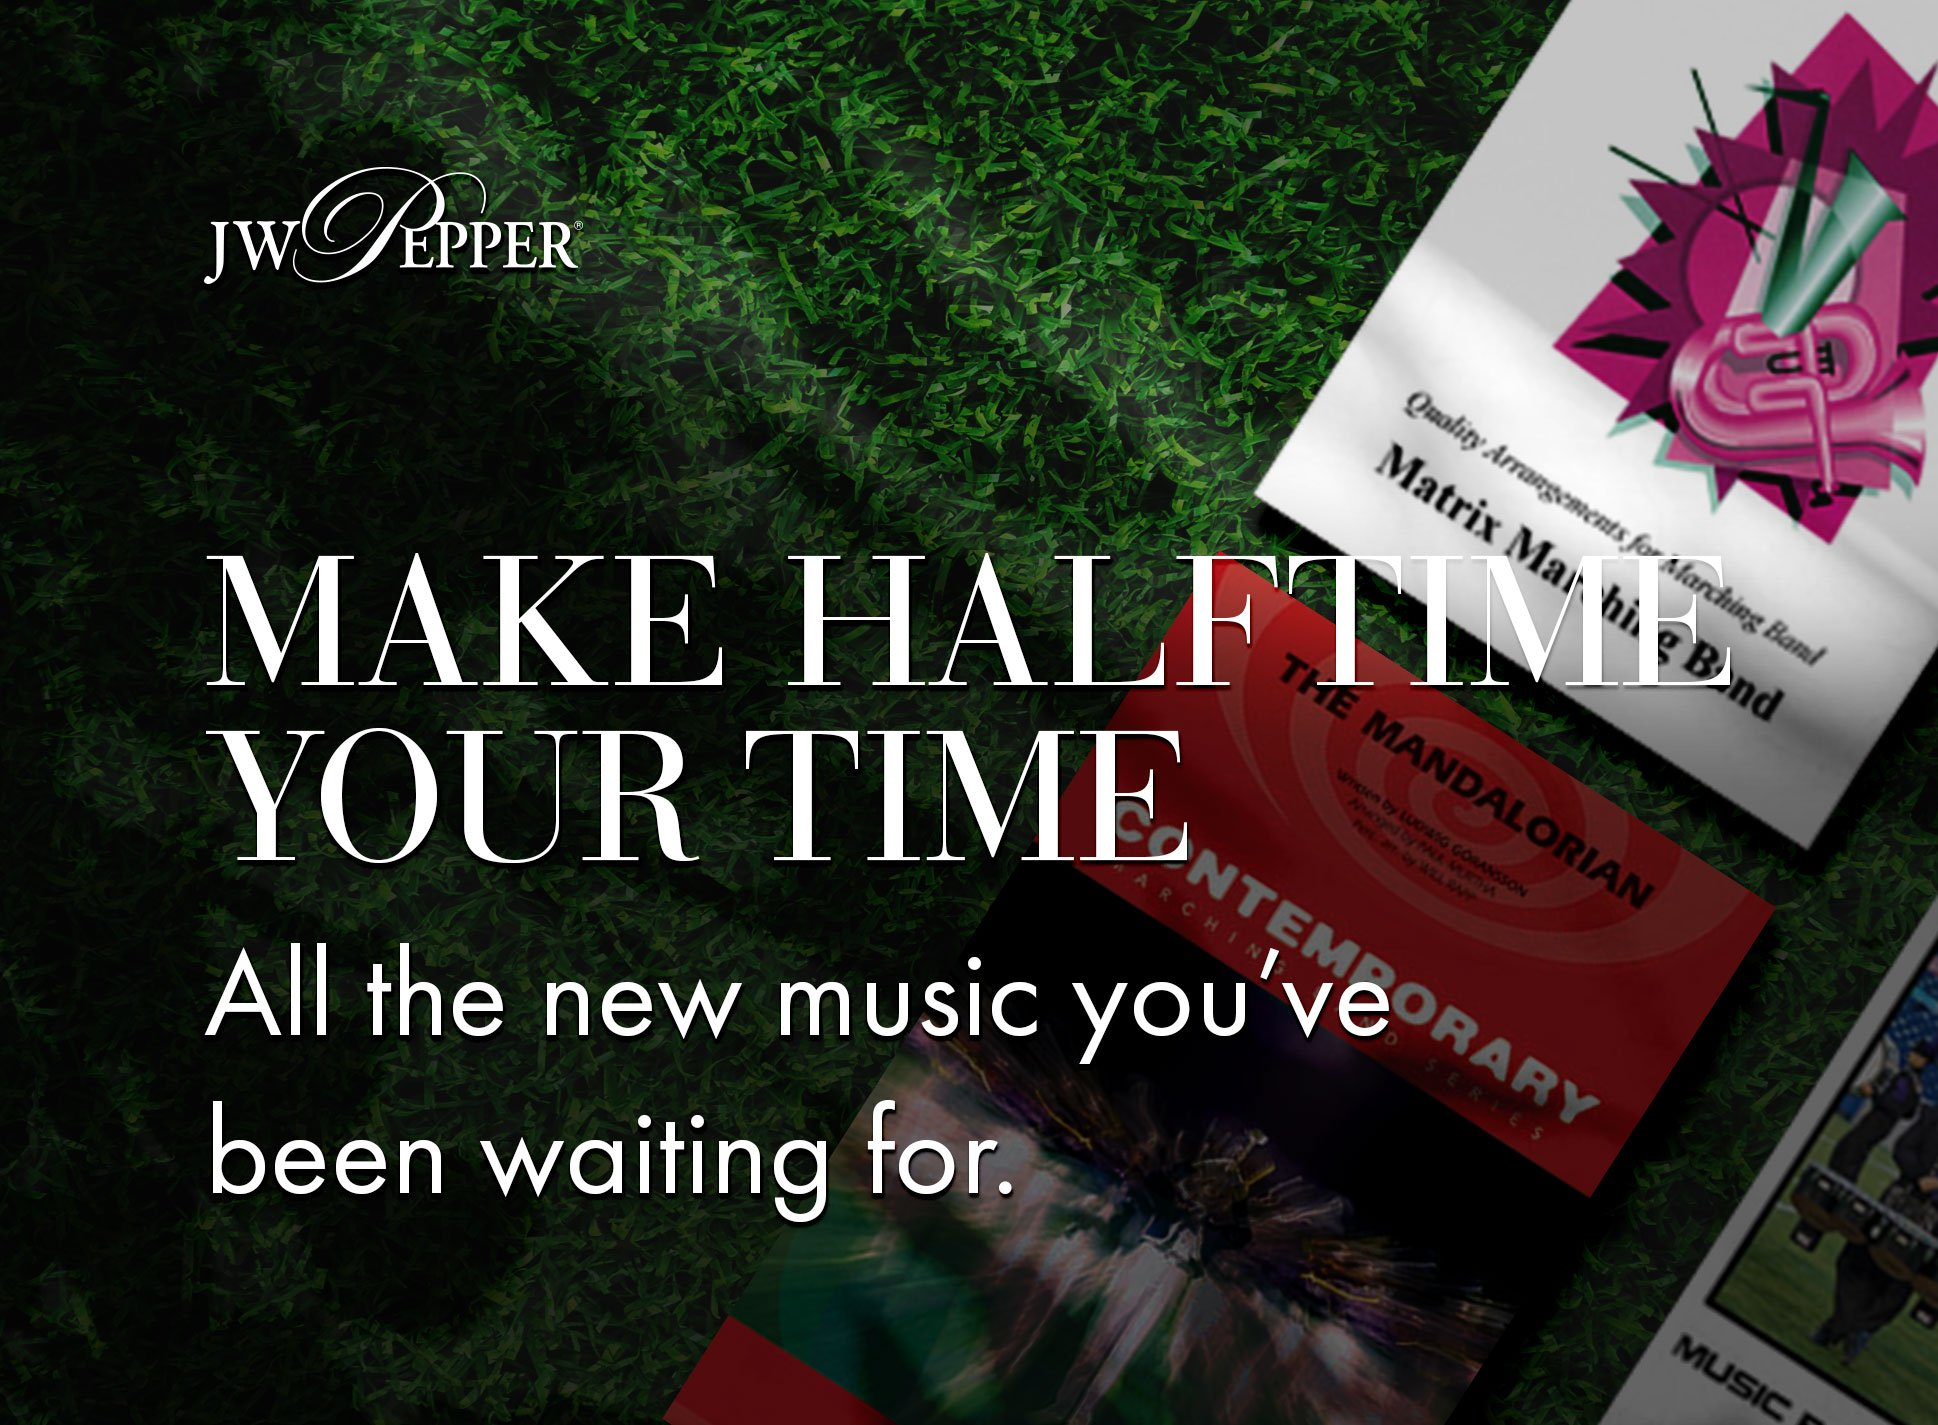 Make halftime your time! All the new marching band music you've been waiting for.